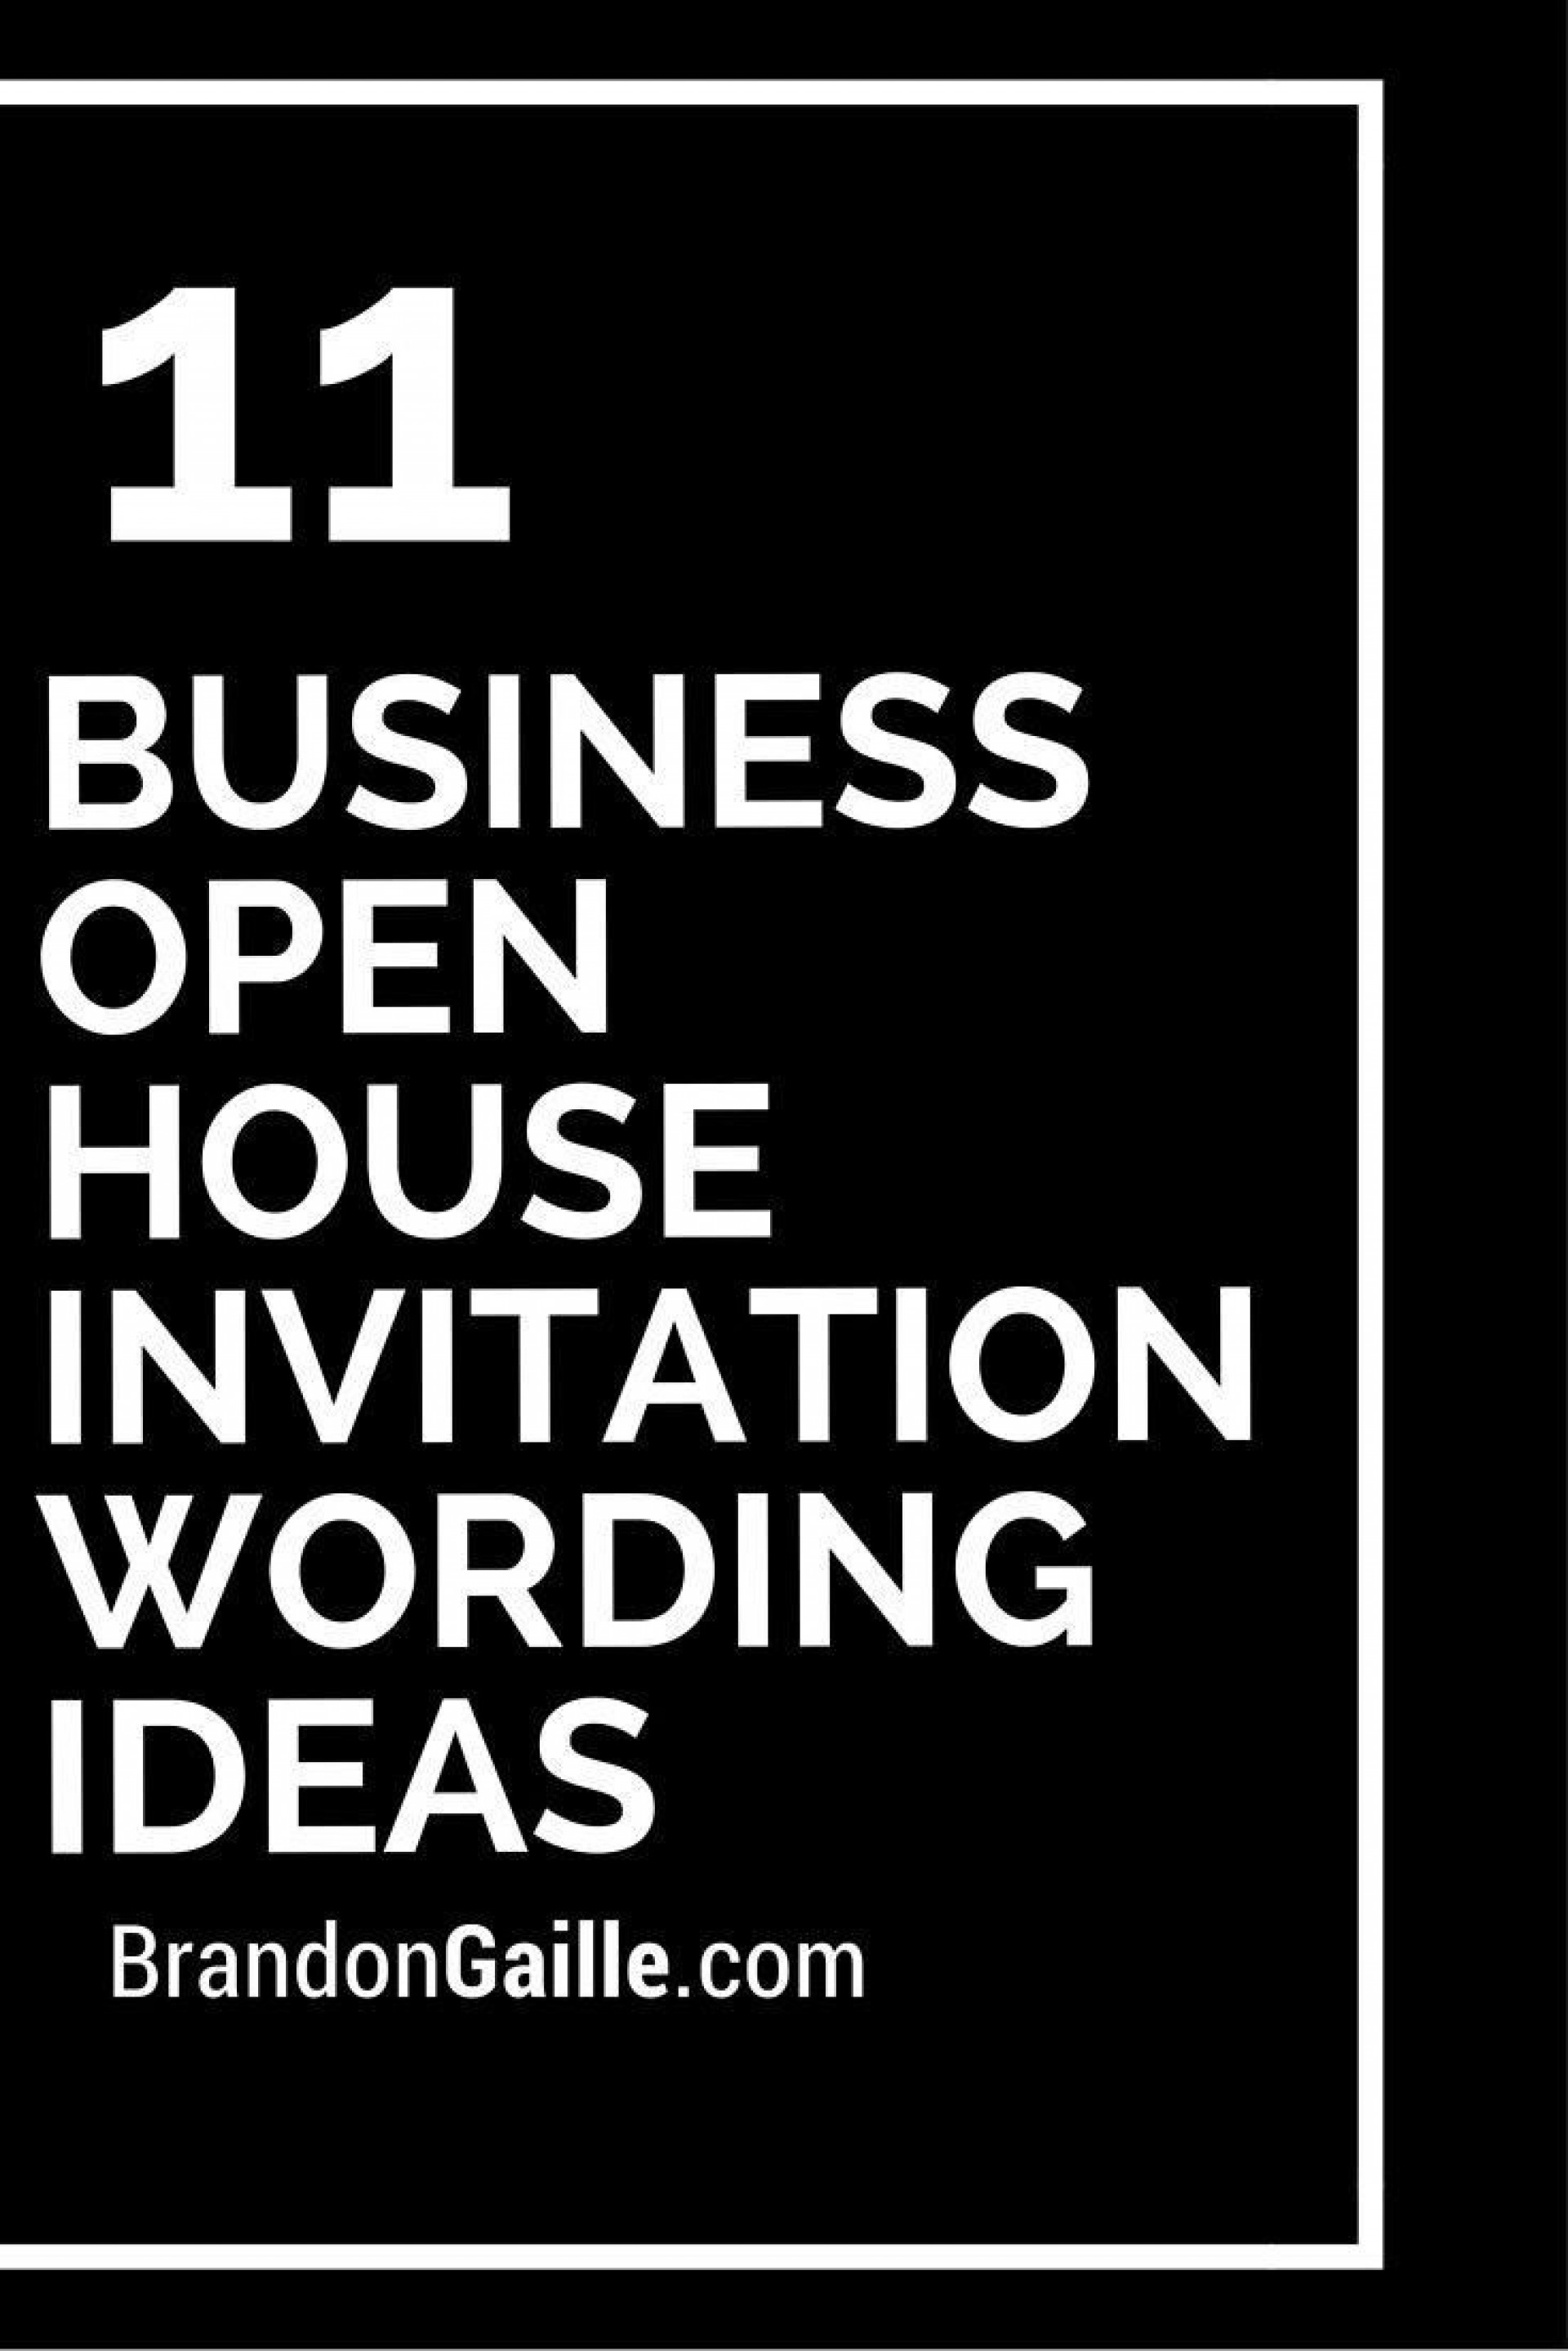 005 Beautiful Open House Invite Template Example  Templates Party Invitation1920